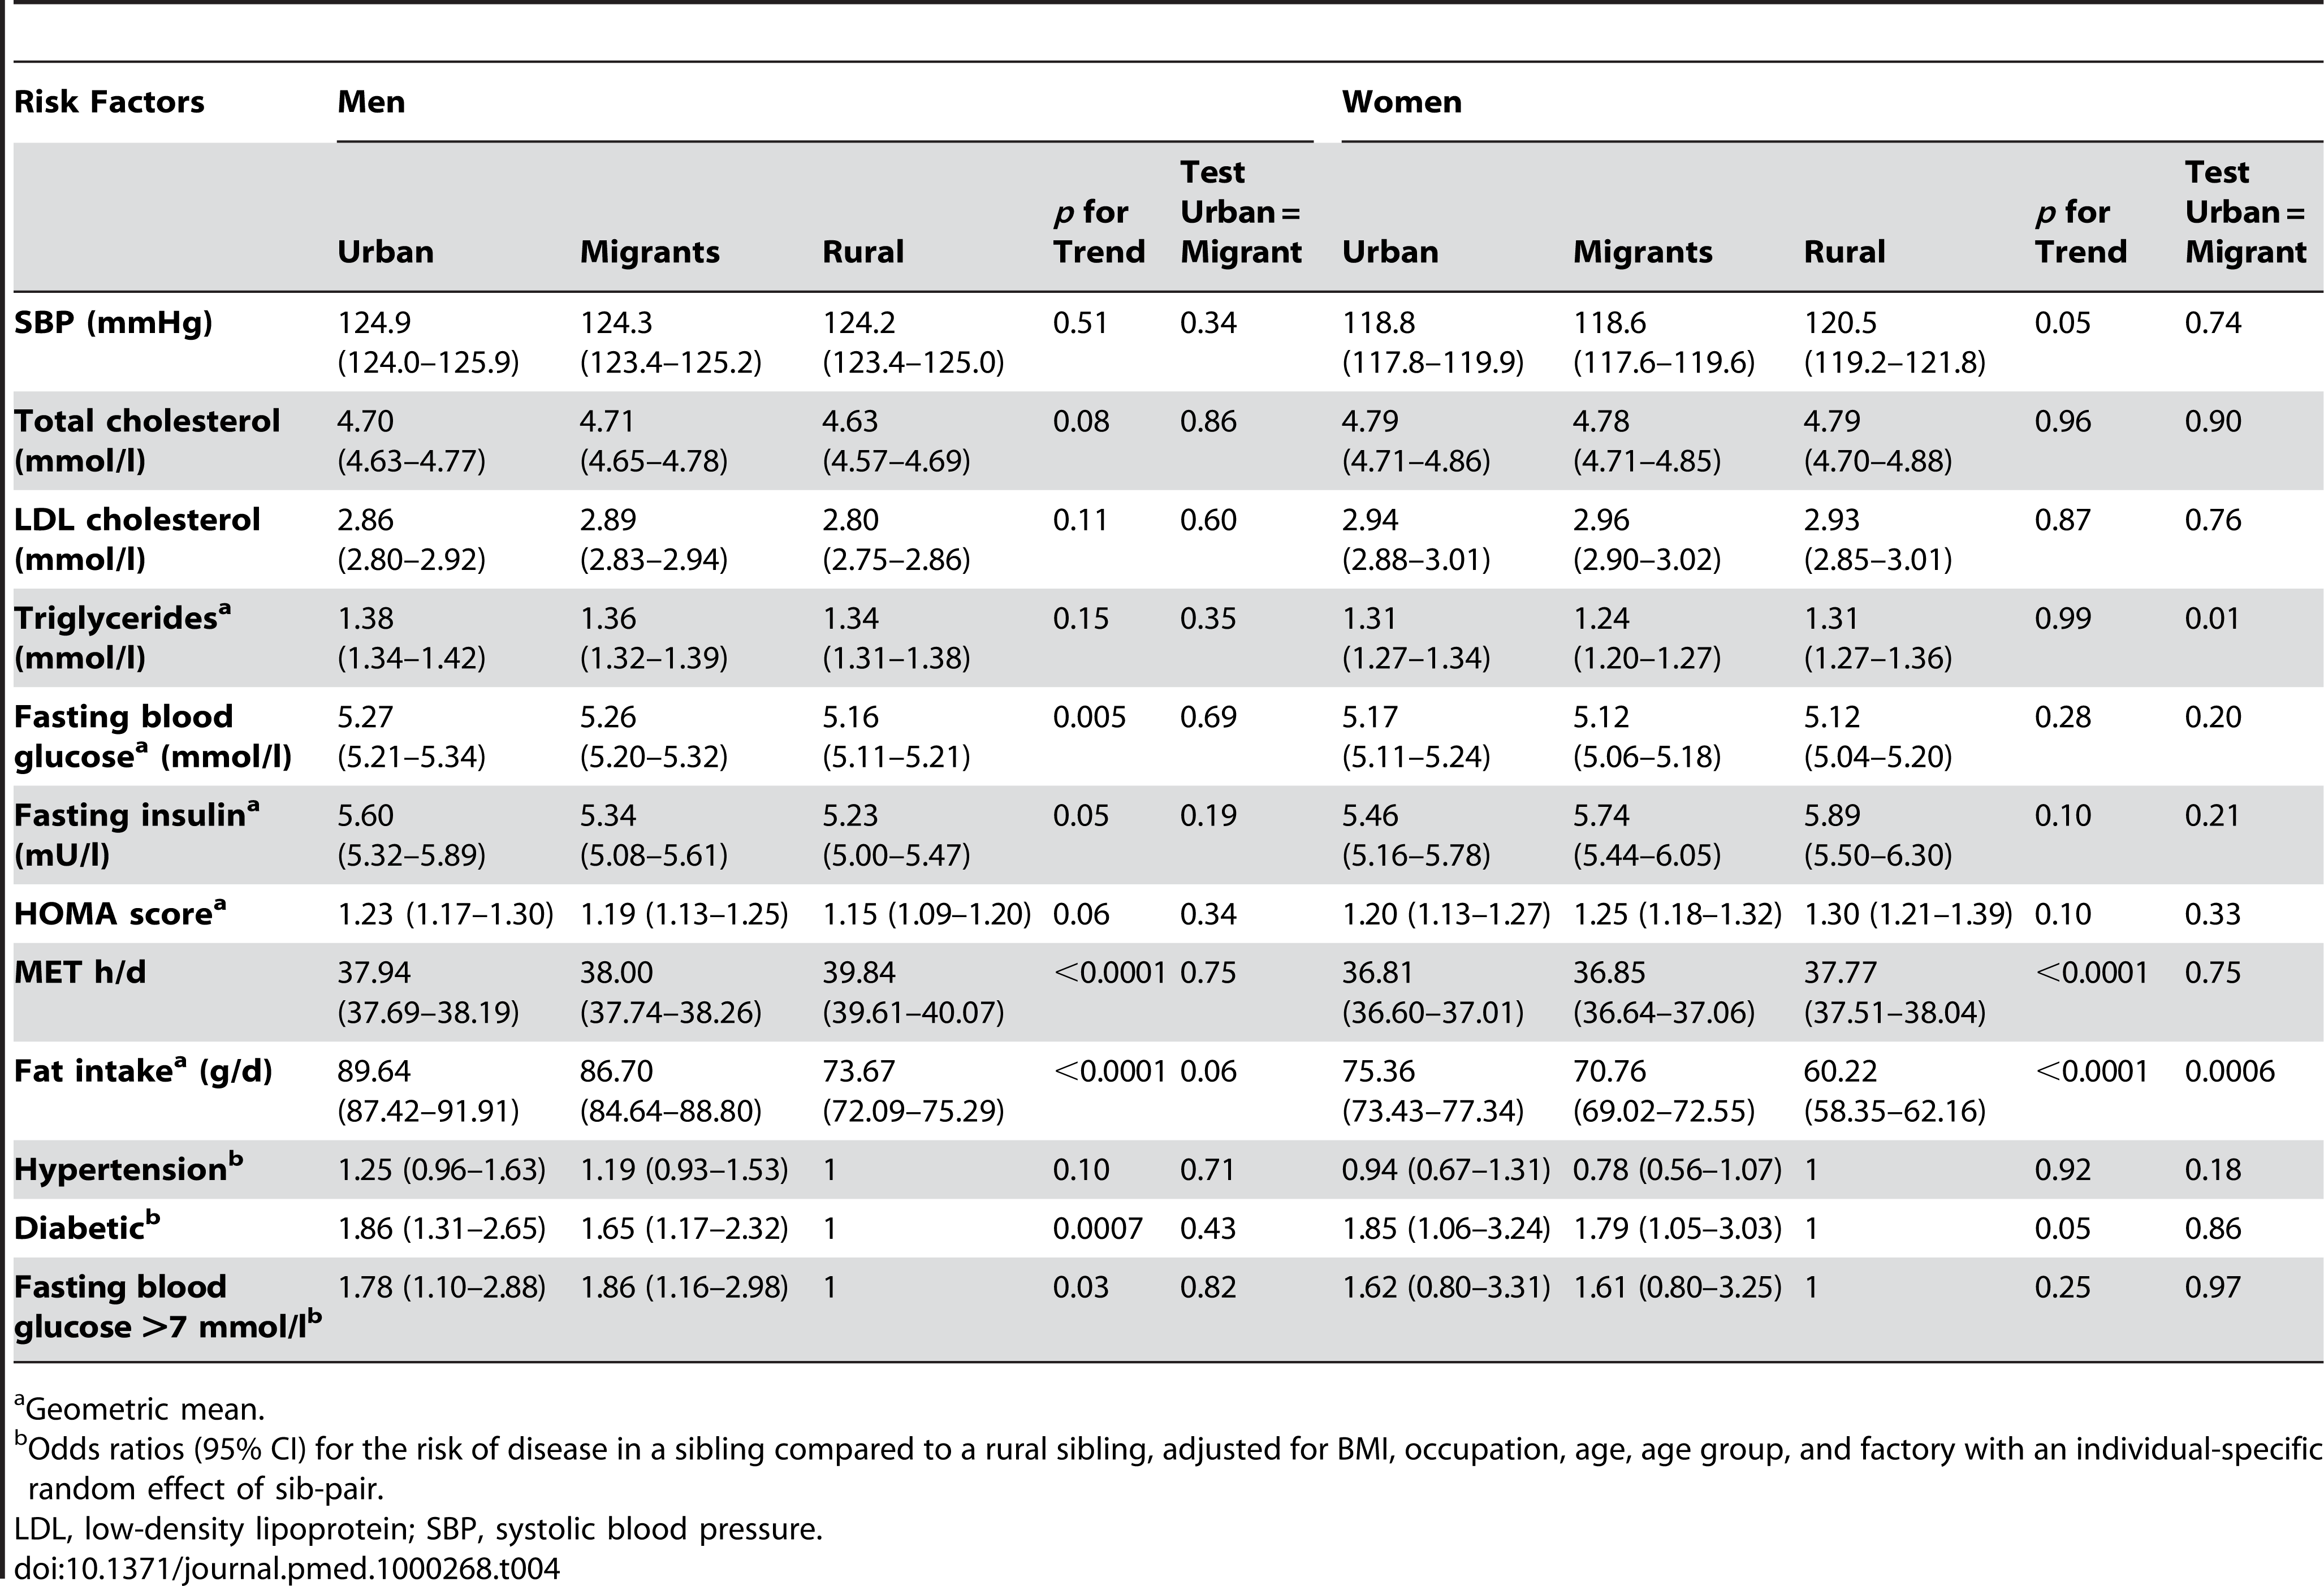 Adjusted mean (95% CI) by place of origin for men and women, adjusted for BMI, occupation, age, age group, and factory including a random effect of sibling pair.